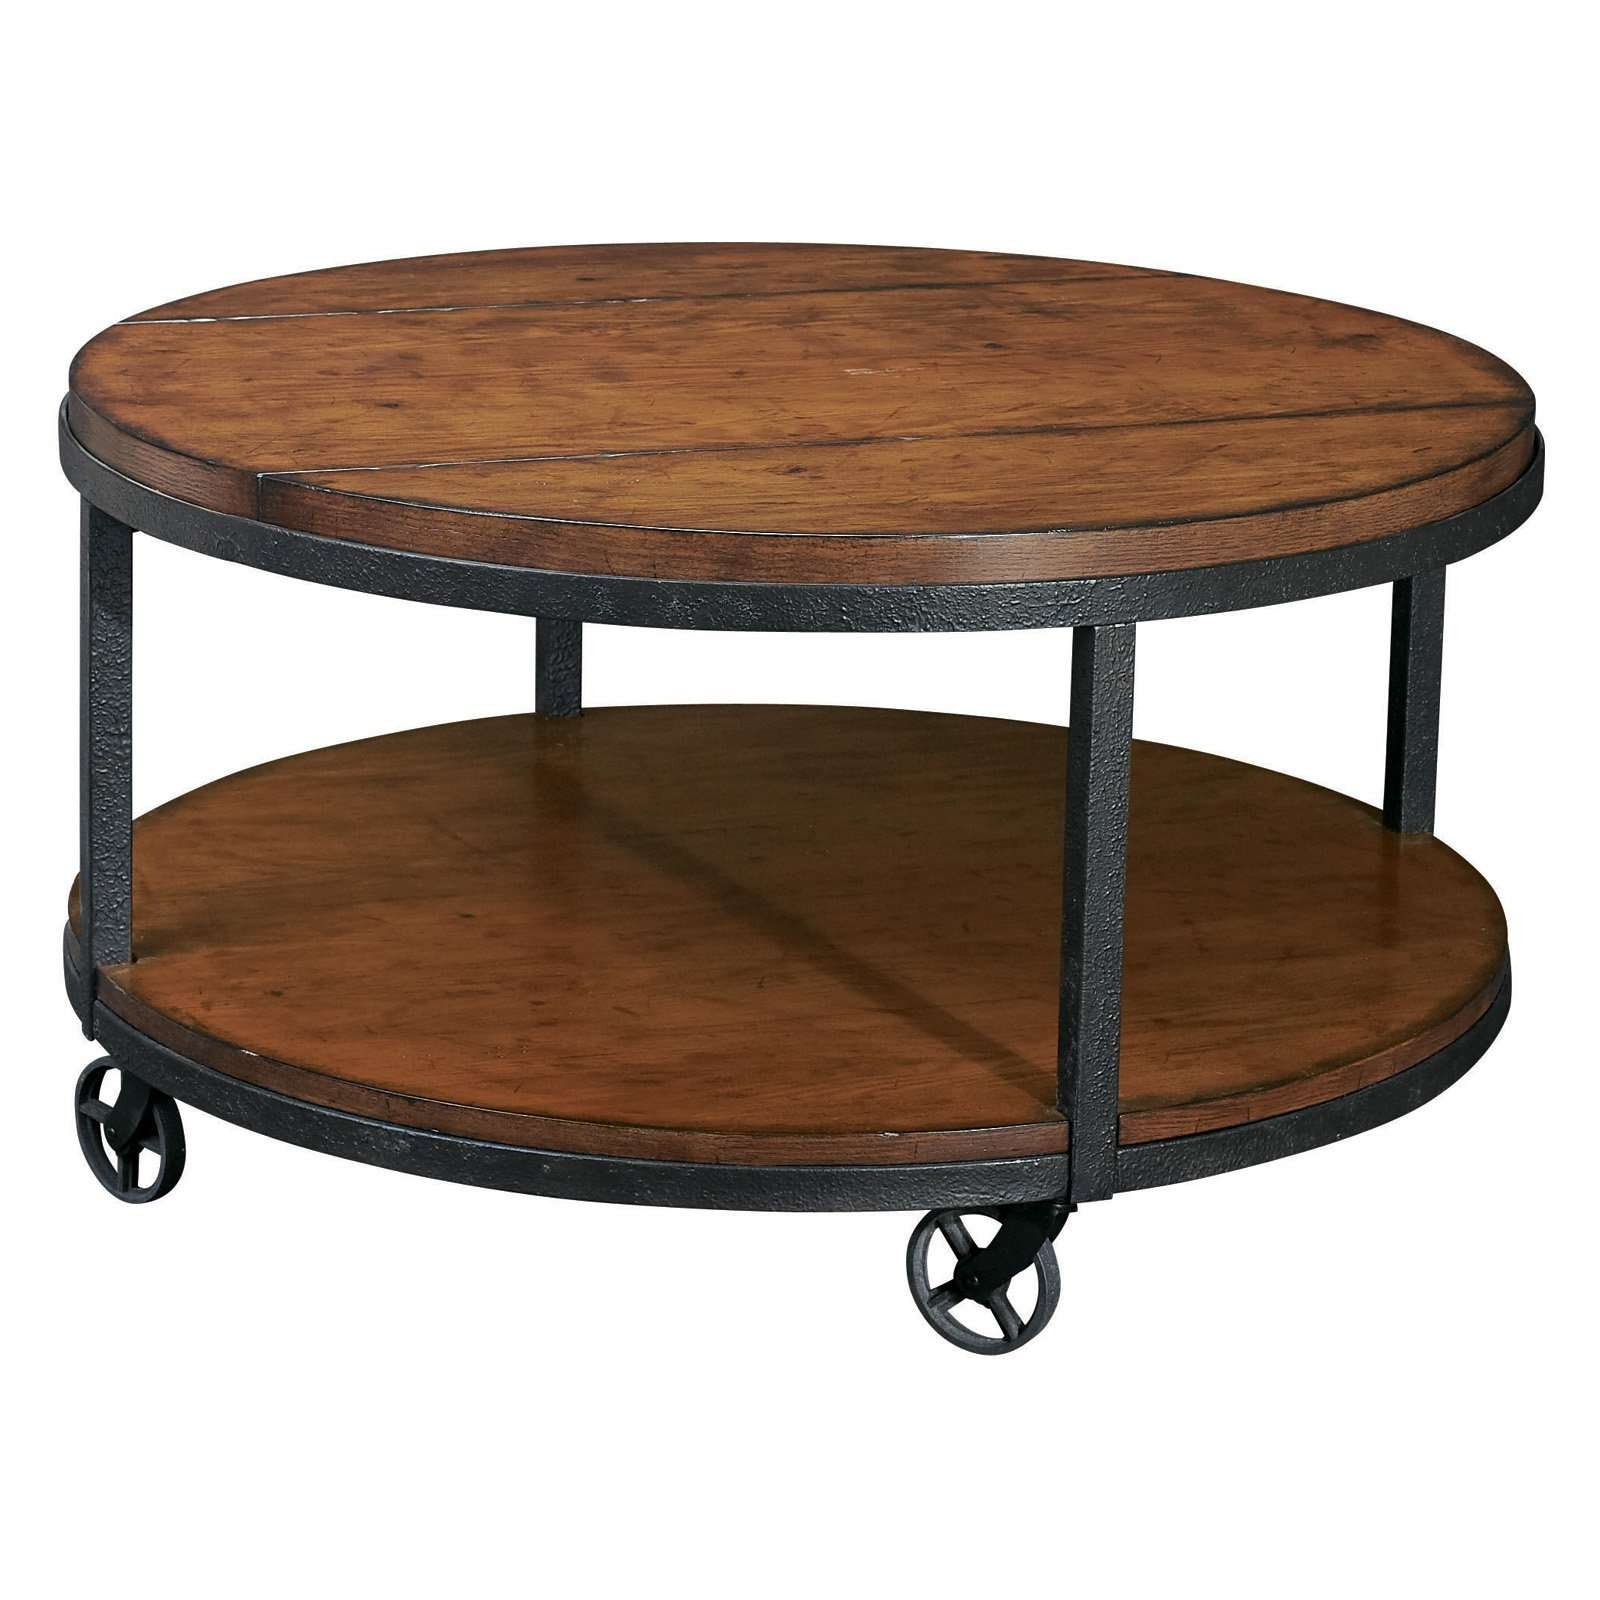 Industrial Glass Genoa Round Coffee Table With Glass Top Dark With Regard To Most Current Industrial Round Coffee Tables (View 5 of 20)